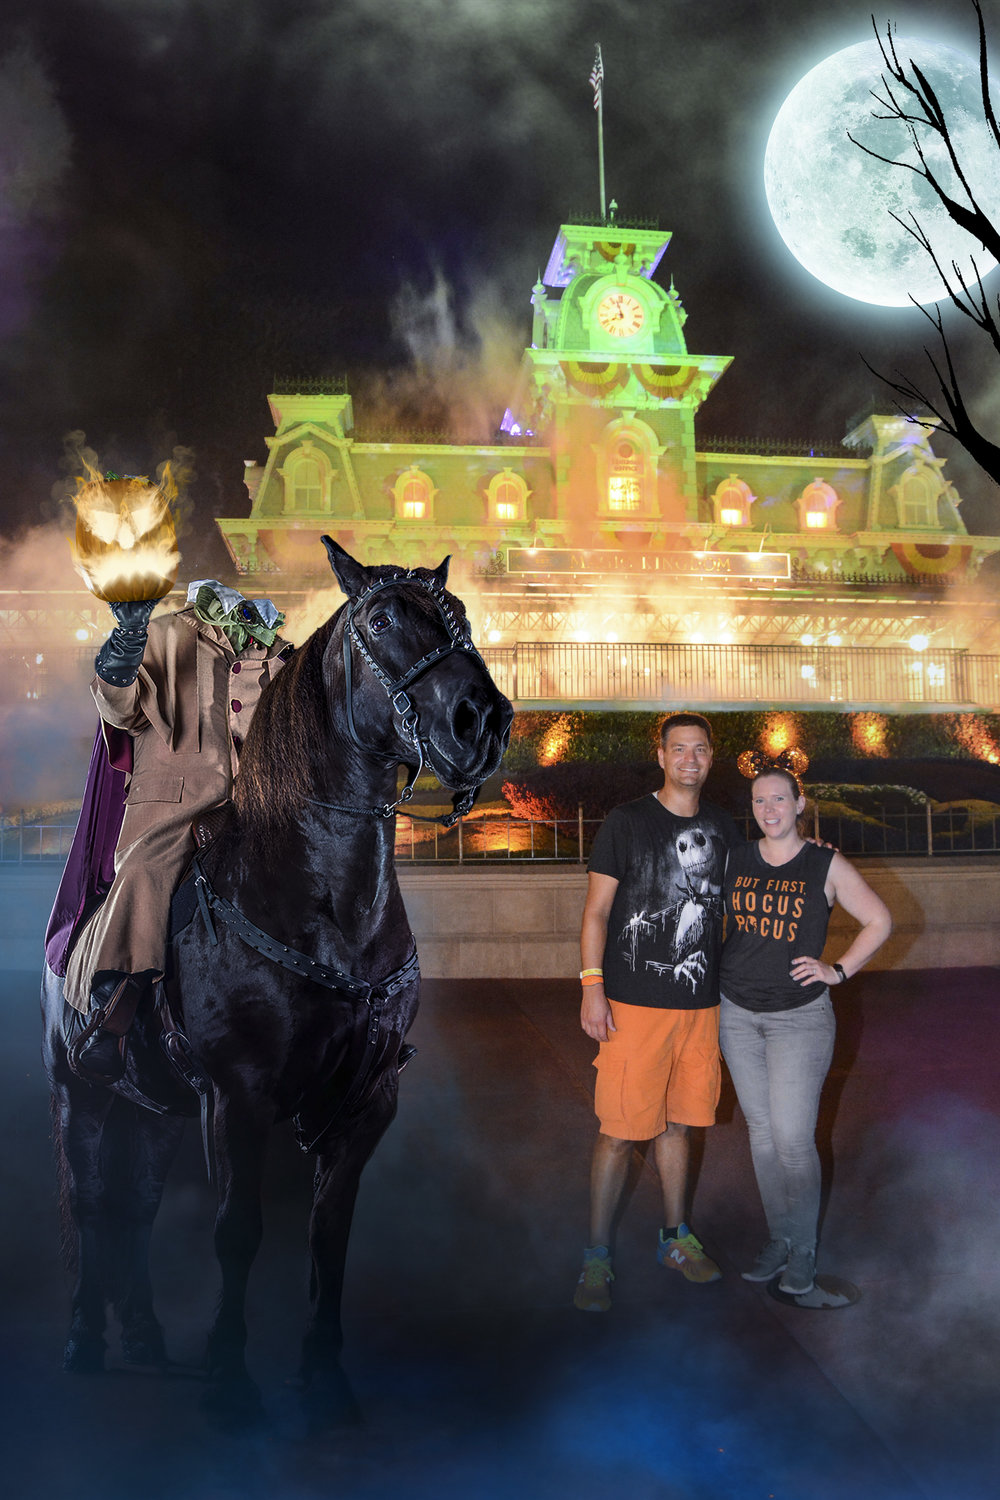 When the Headless Horseman stops for a pic.